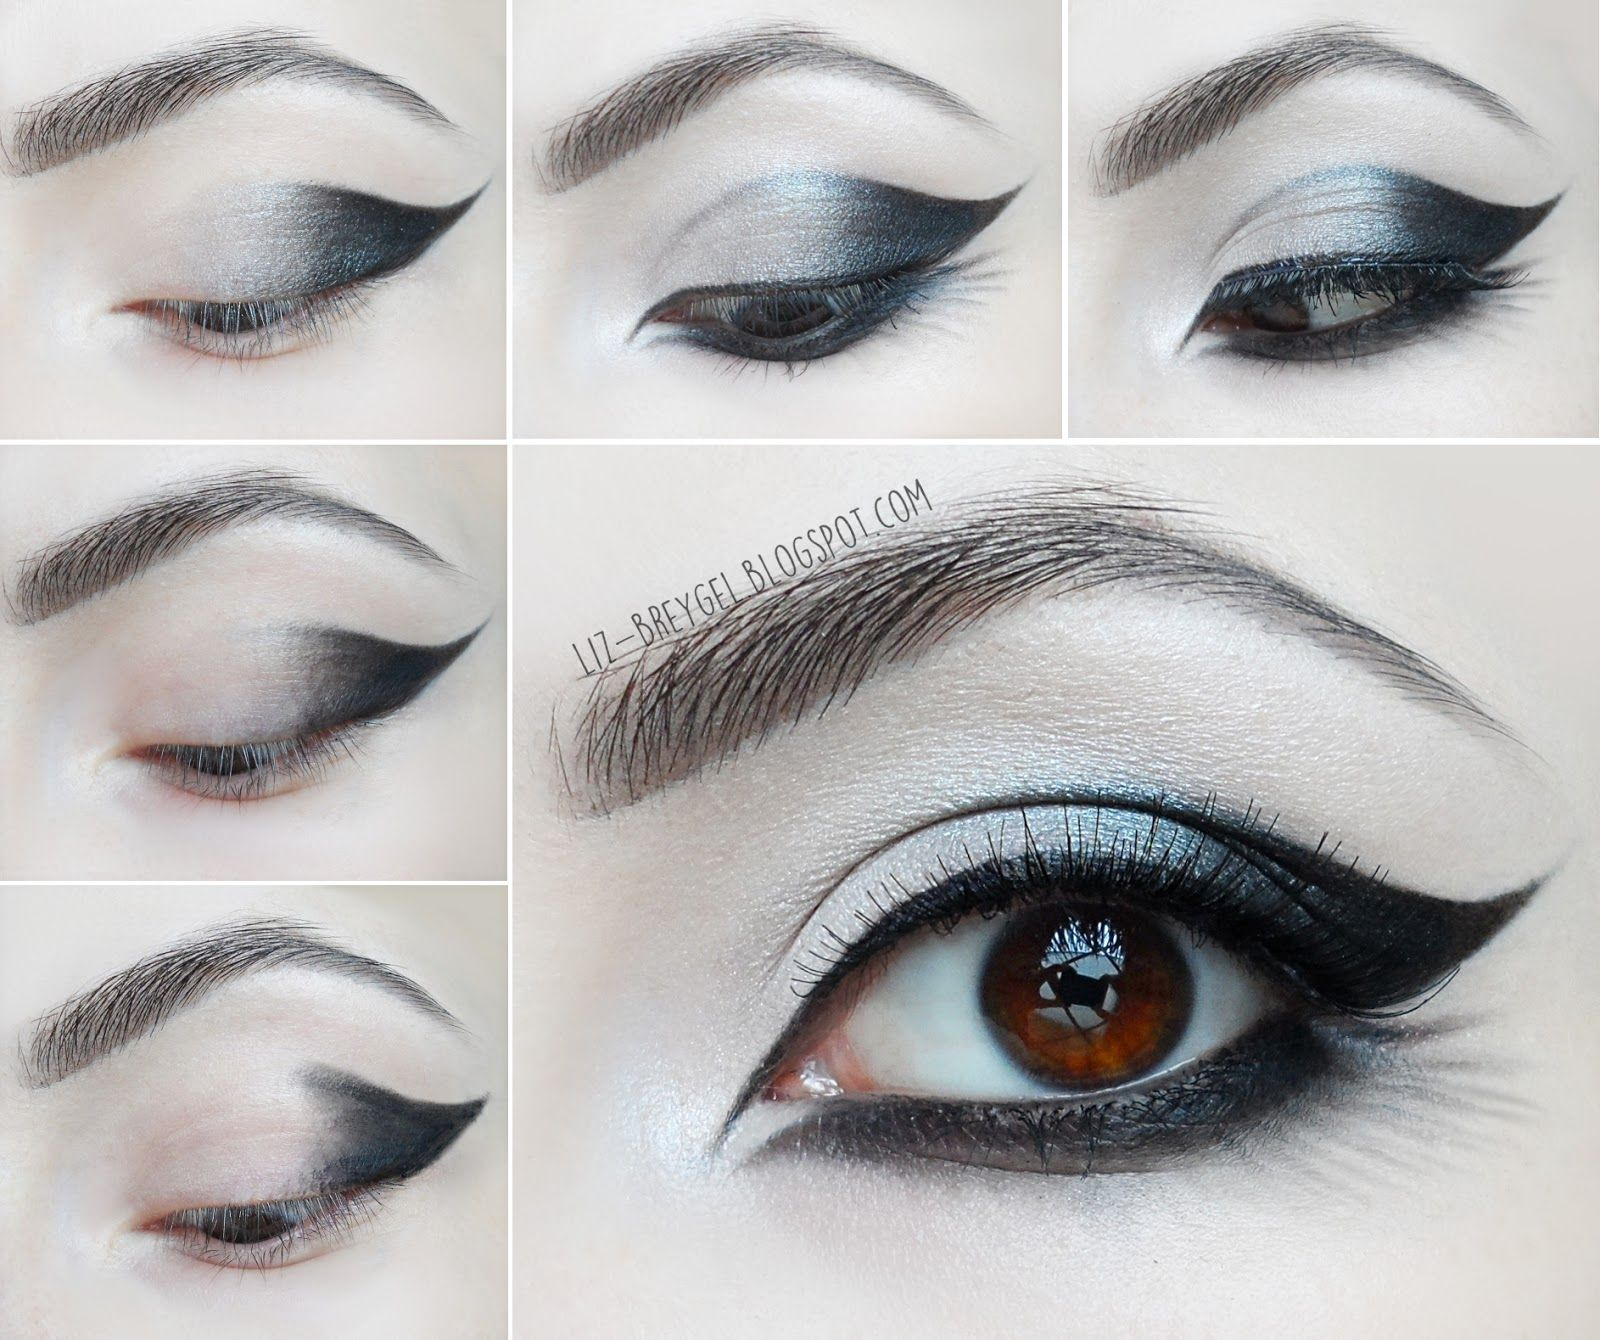 Goth Eye Makeup Step By Step Tutorial (With images